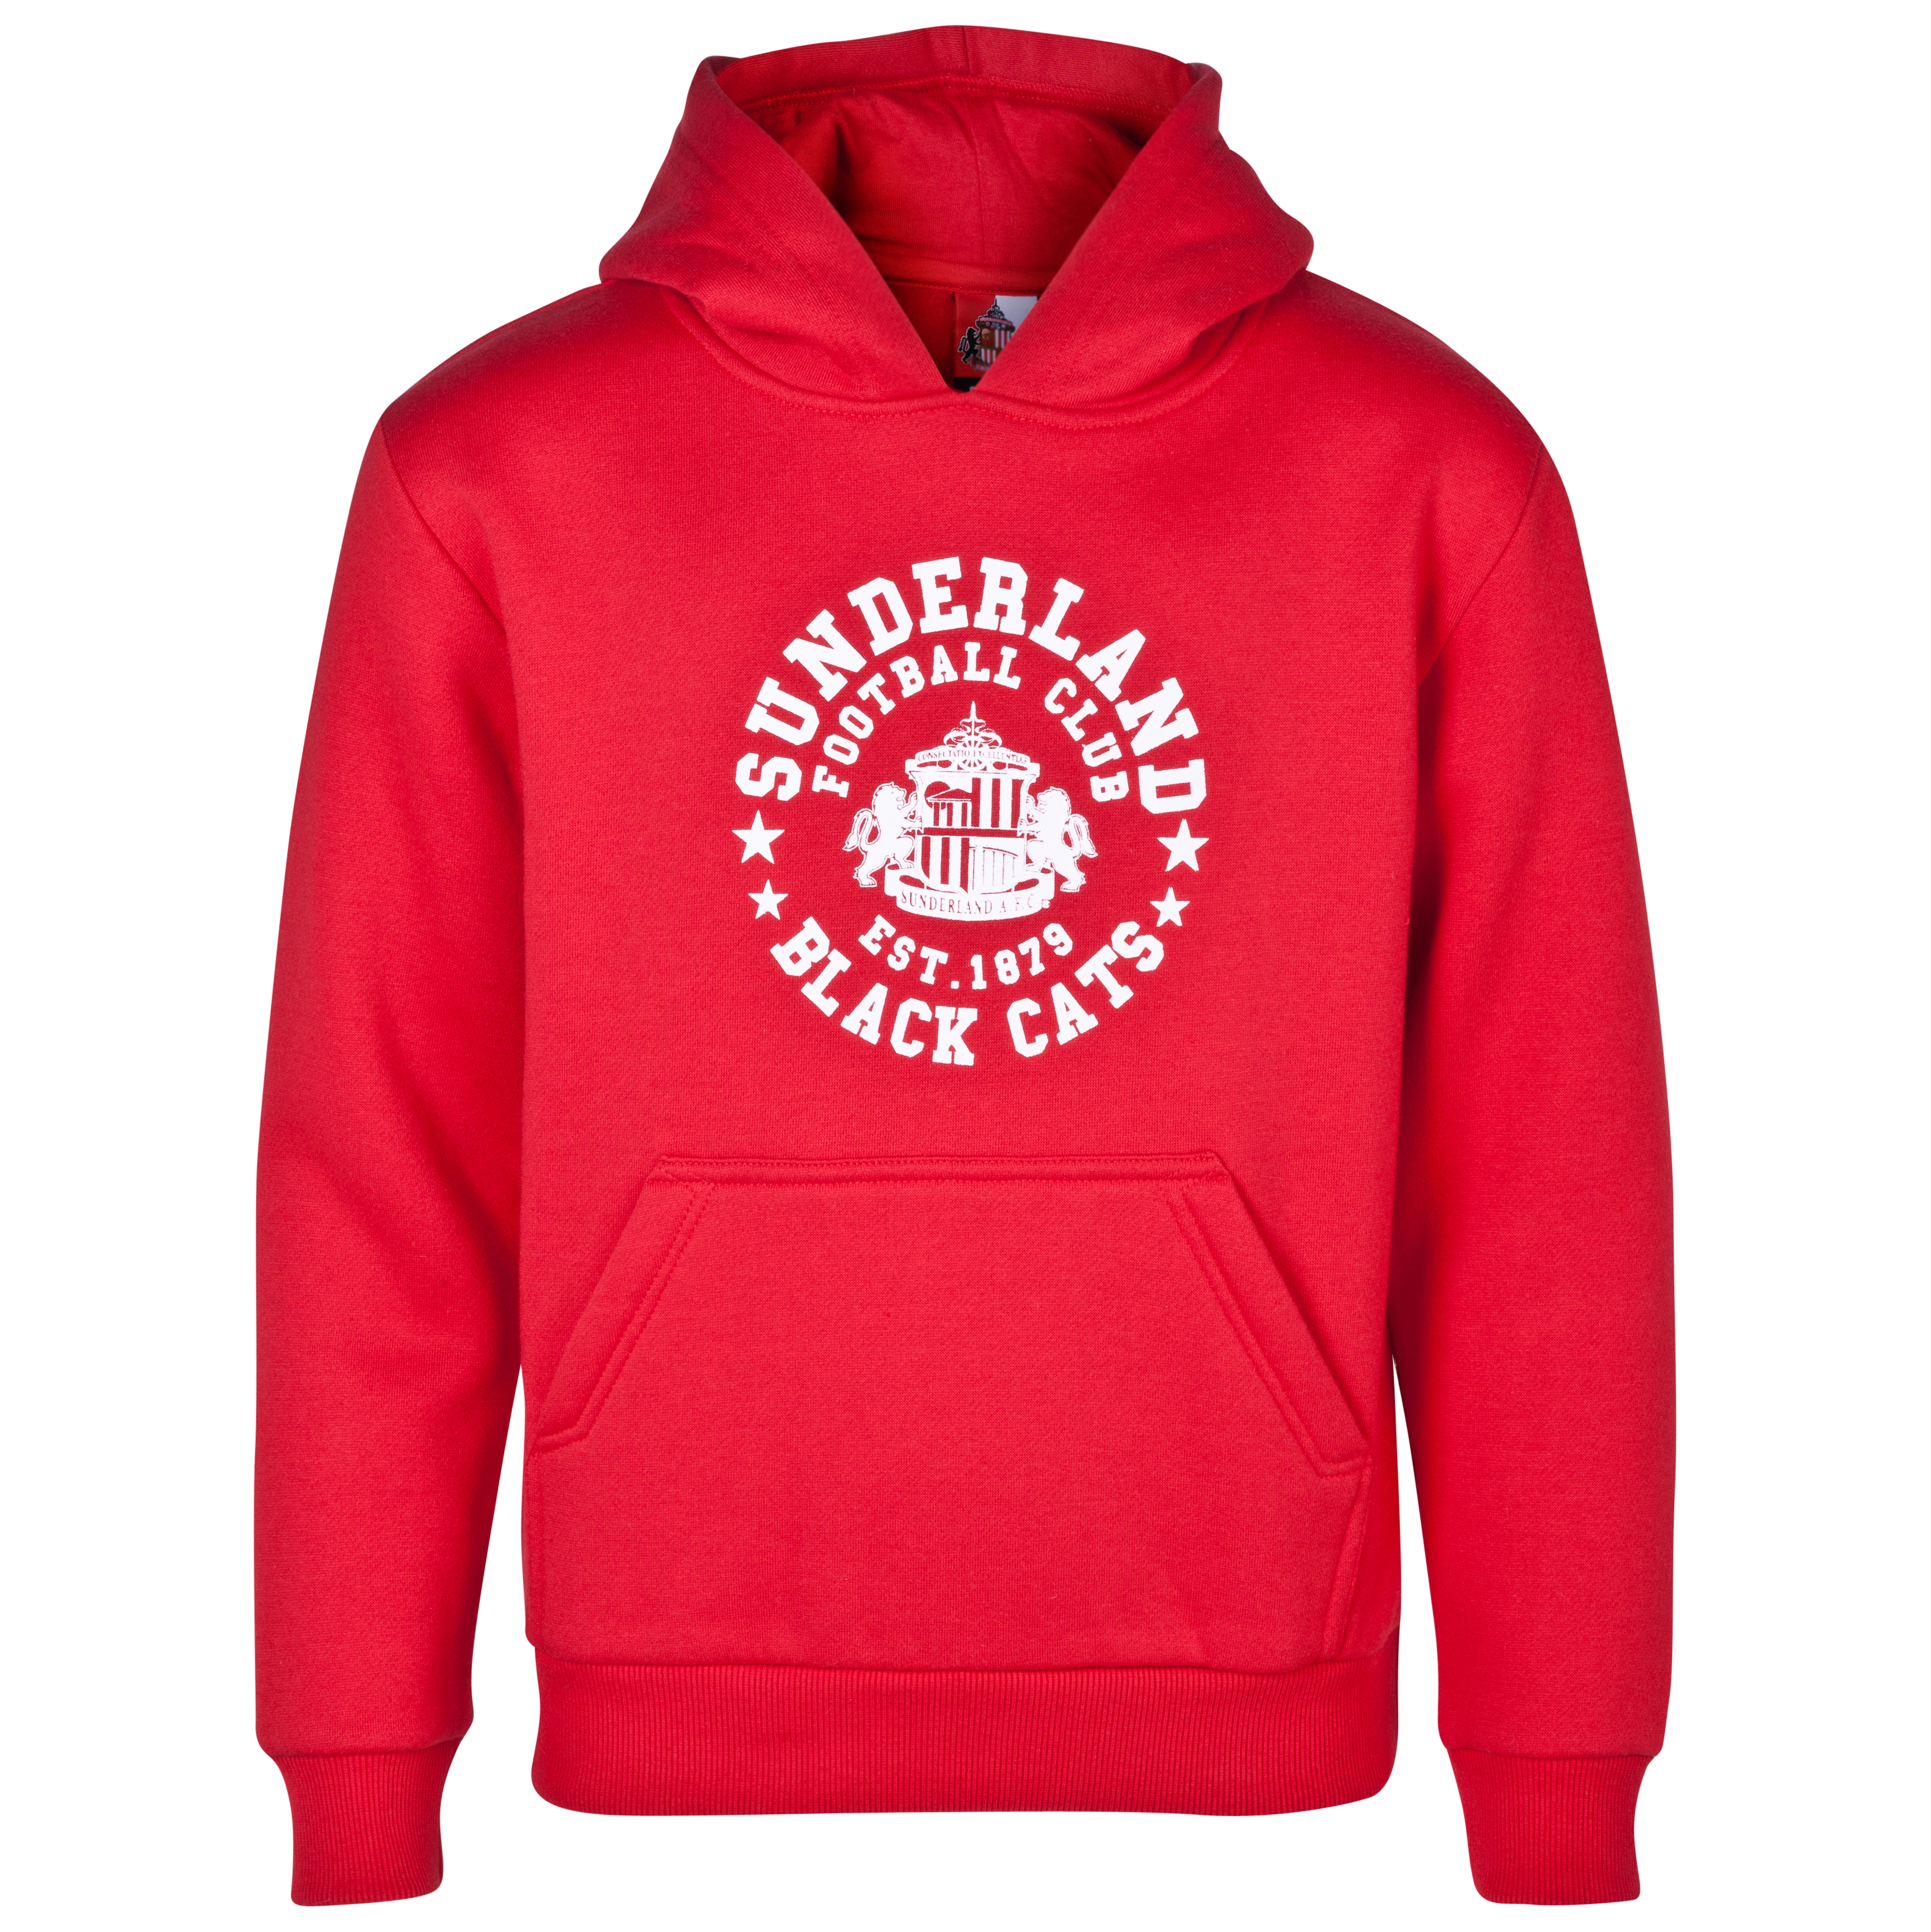 Sunderland Essentials Radius Hoody - Older Boys Red